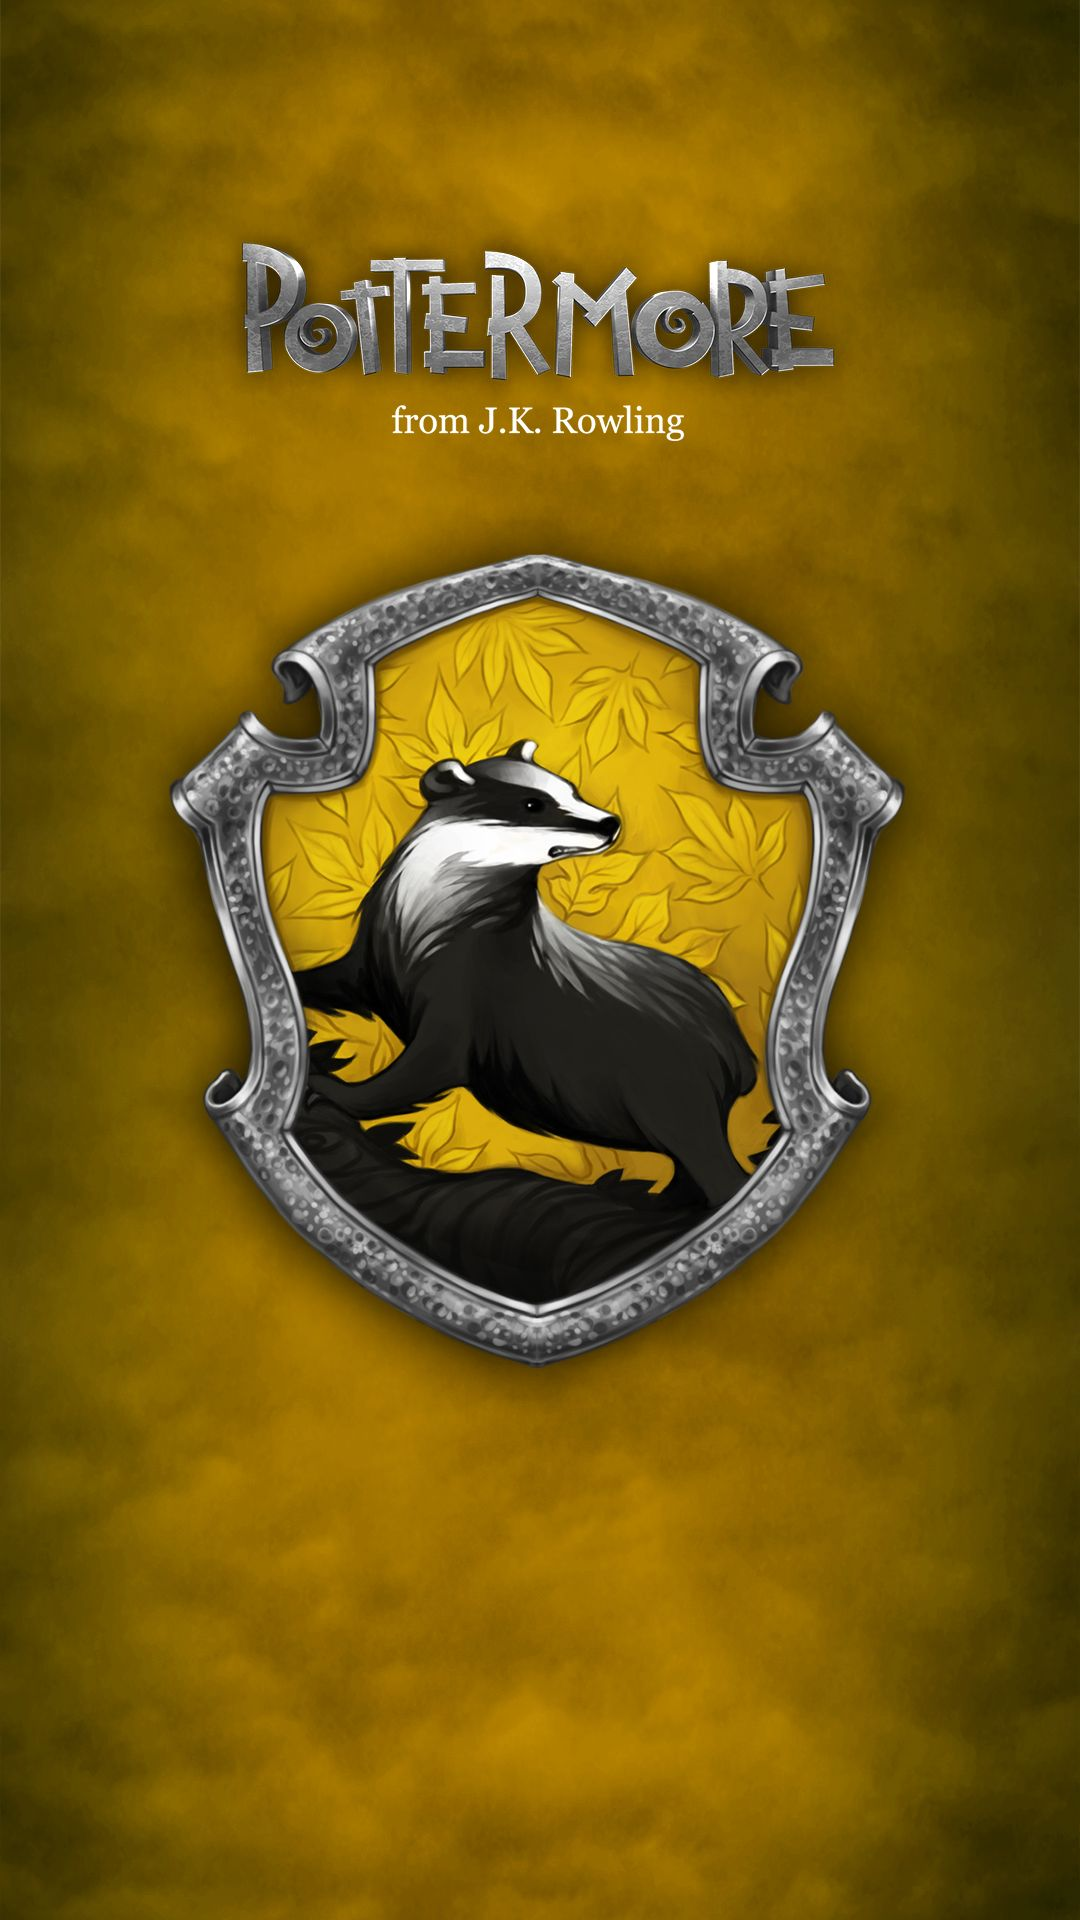 Best 52+ Hufflepuff Wallpapers on HipWallpapers